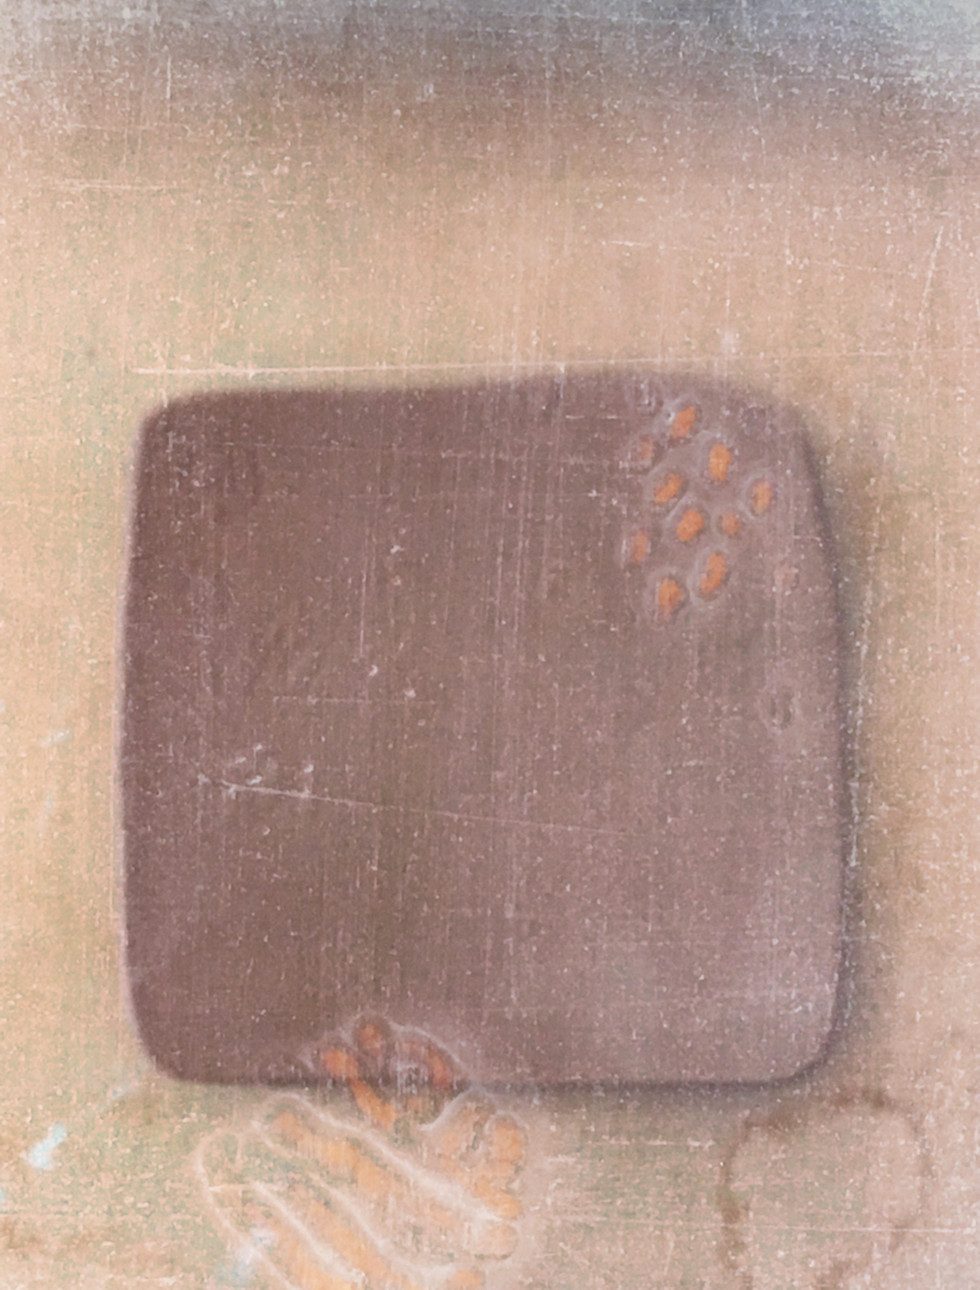 tania rollond_plate making_double exposu